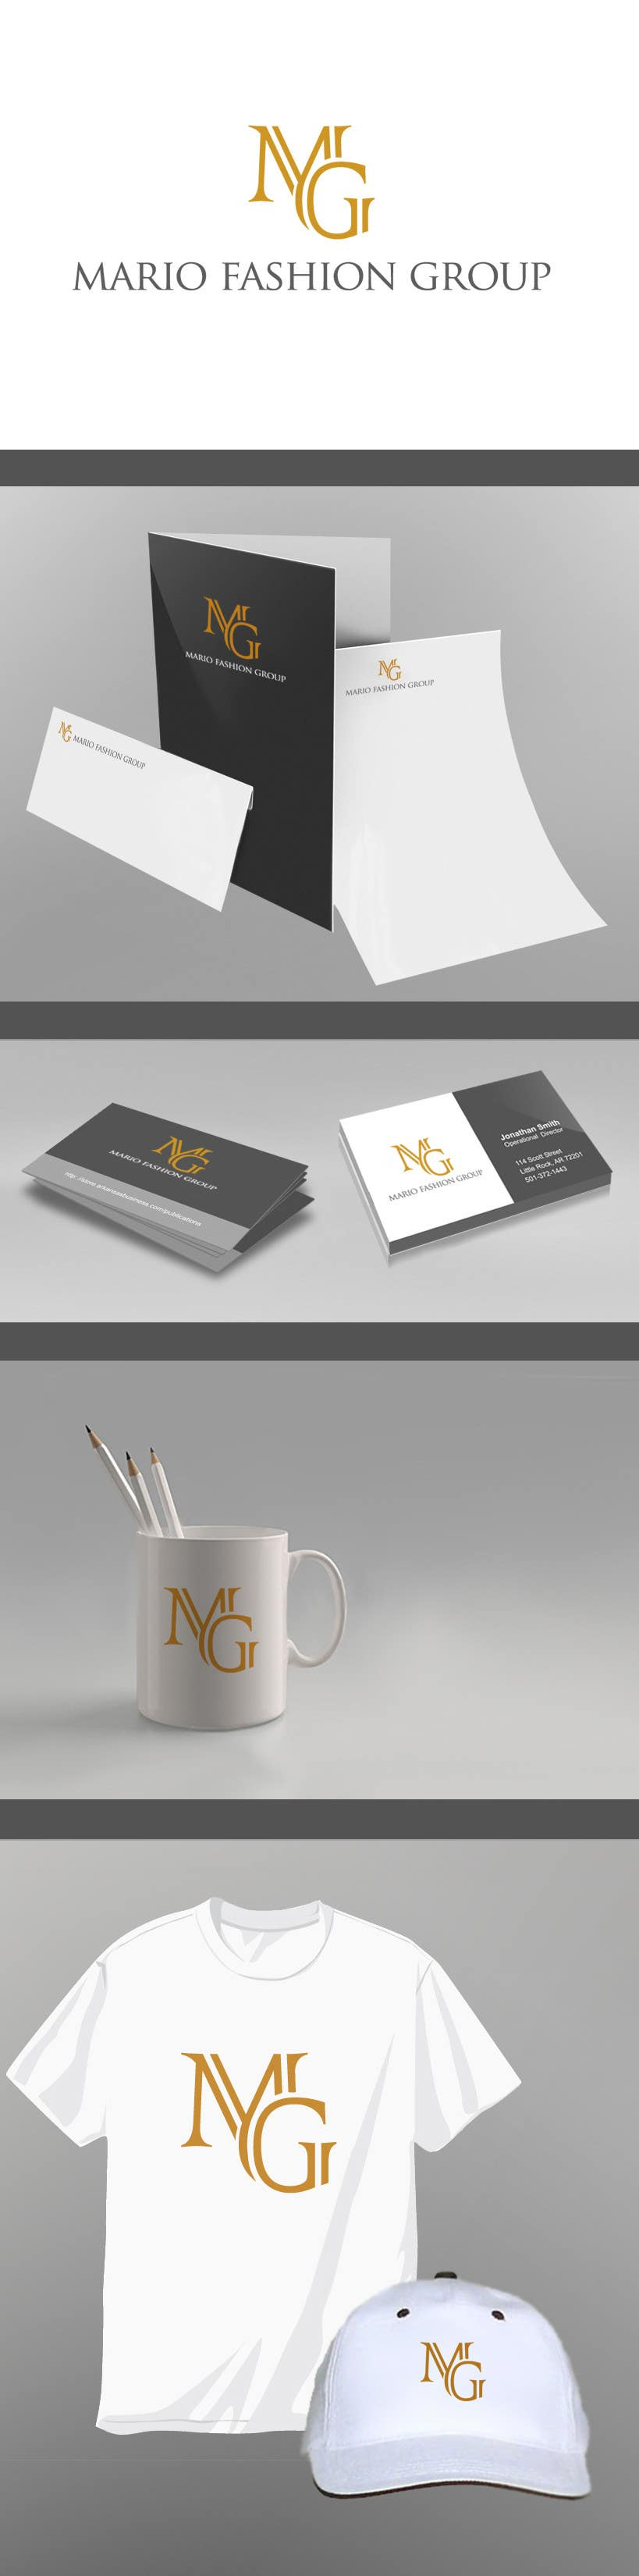 Contest Entry #28 for Develop a Corporate Identity for Mario Fashion Group